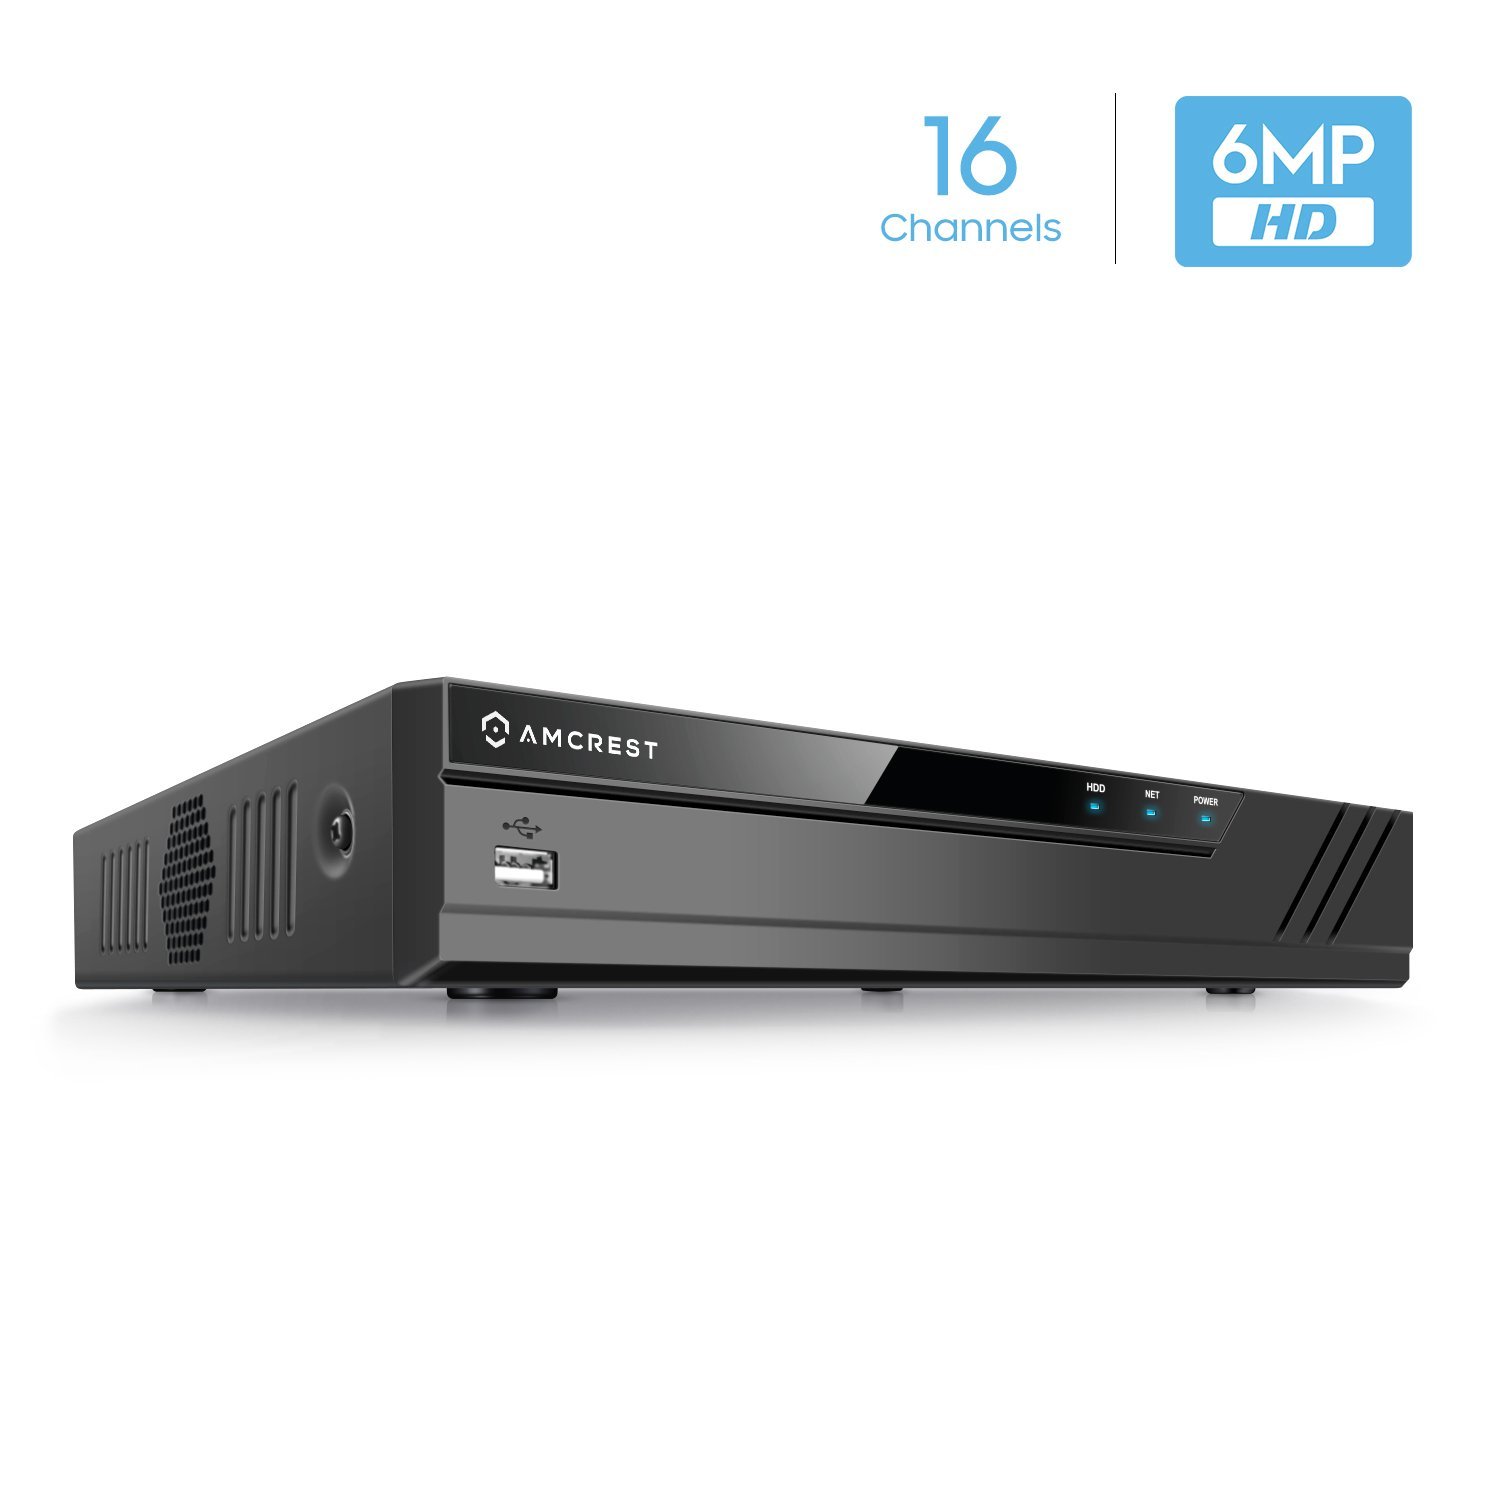 Amcrest NV2104 4CH 1080P/3MP/4MP/5MP/6MP Network Video Recorder, 4-Channel NVR, Supports Four x 6-Megapixel IP Cameras, Supports 6TB HDD (Not Included) (No Built-In Wifi) 4331910923